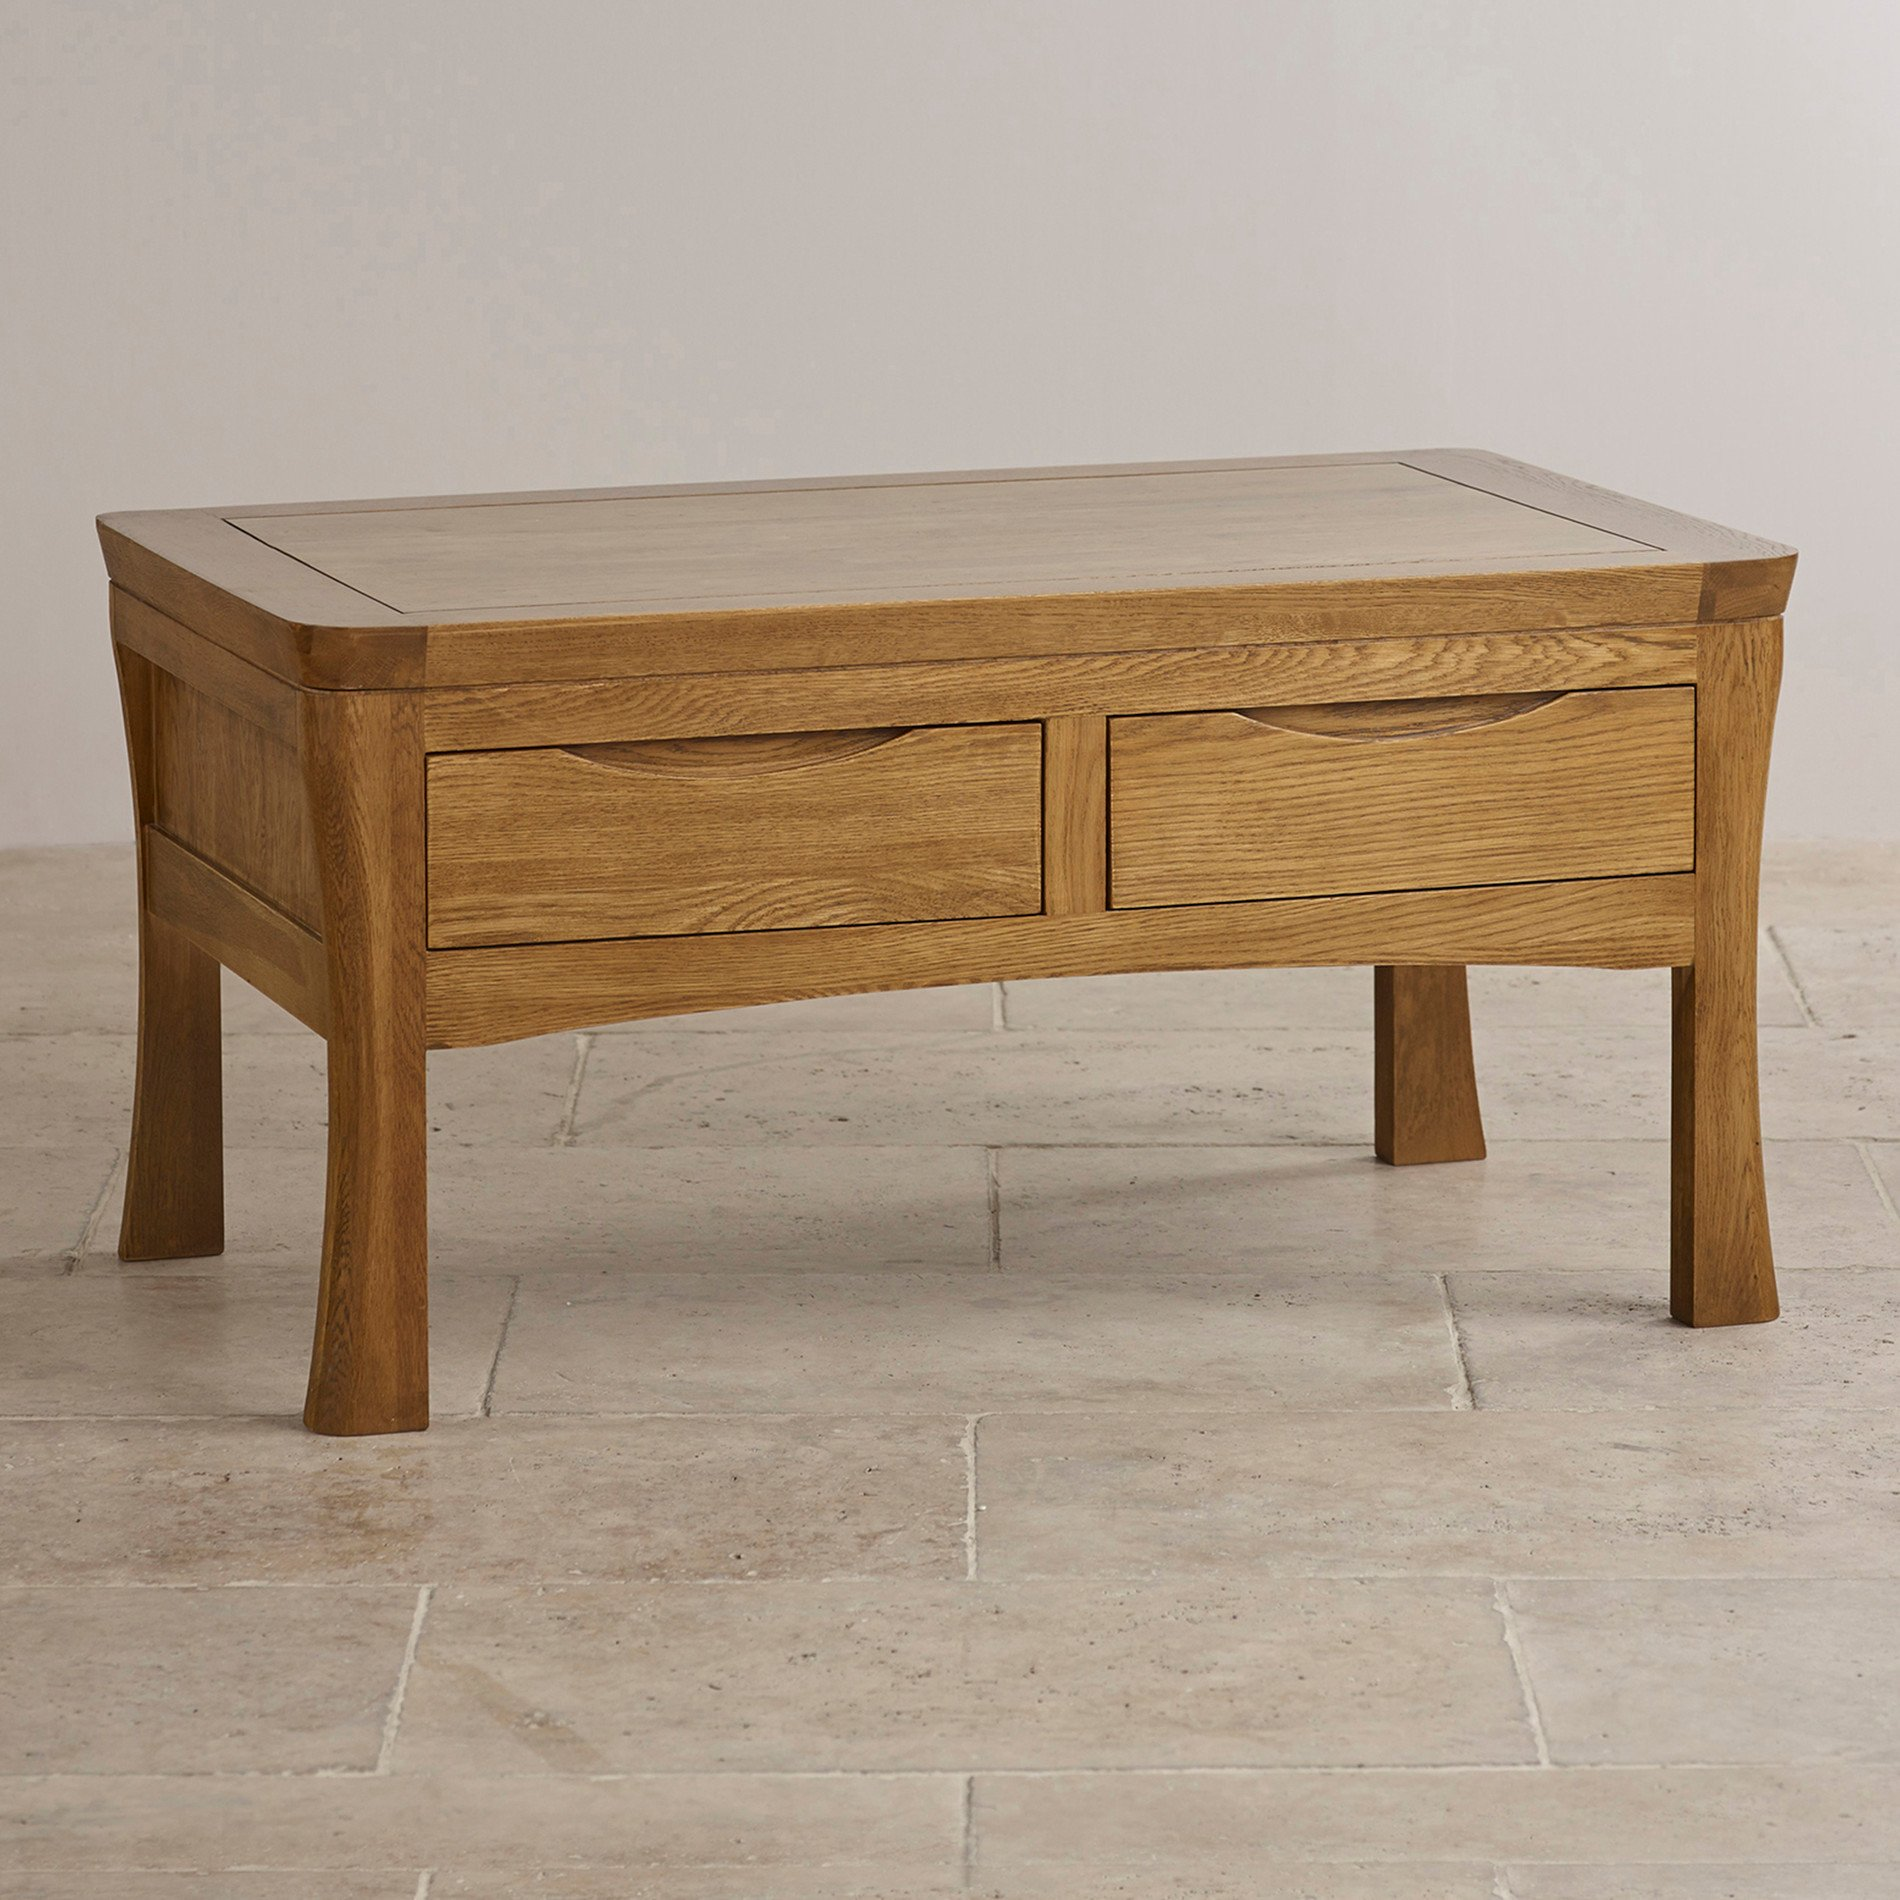 Orrick 4 Drawer Coffee Table in Rustic Oak